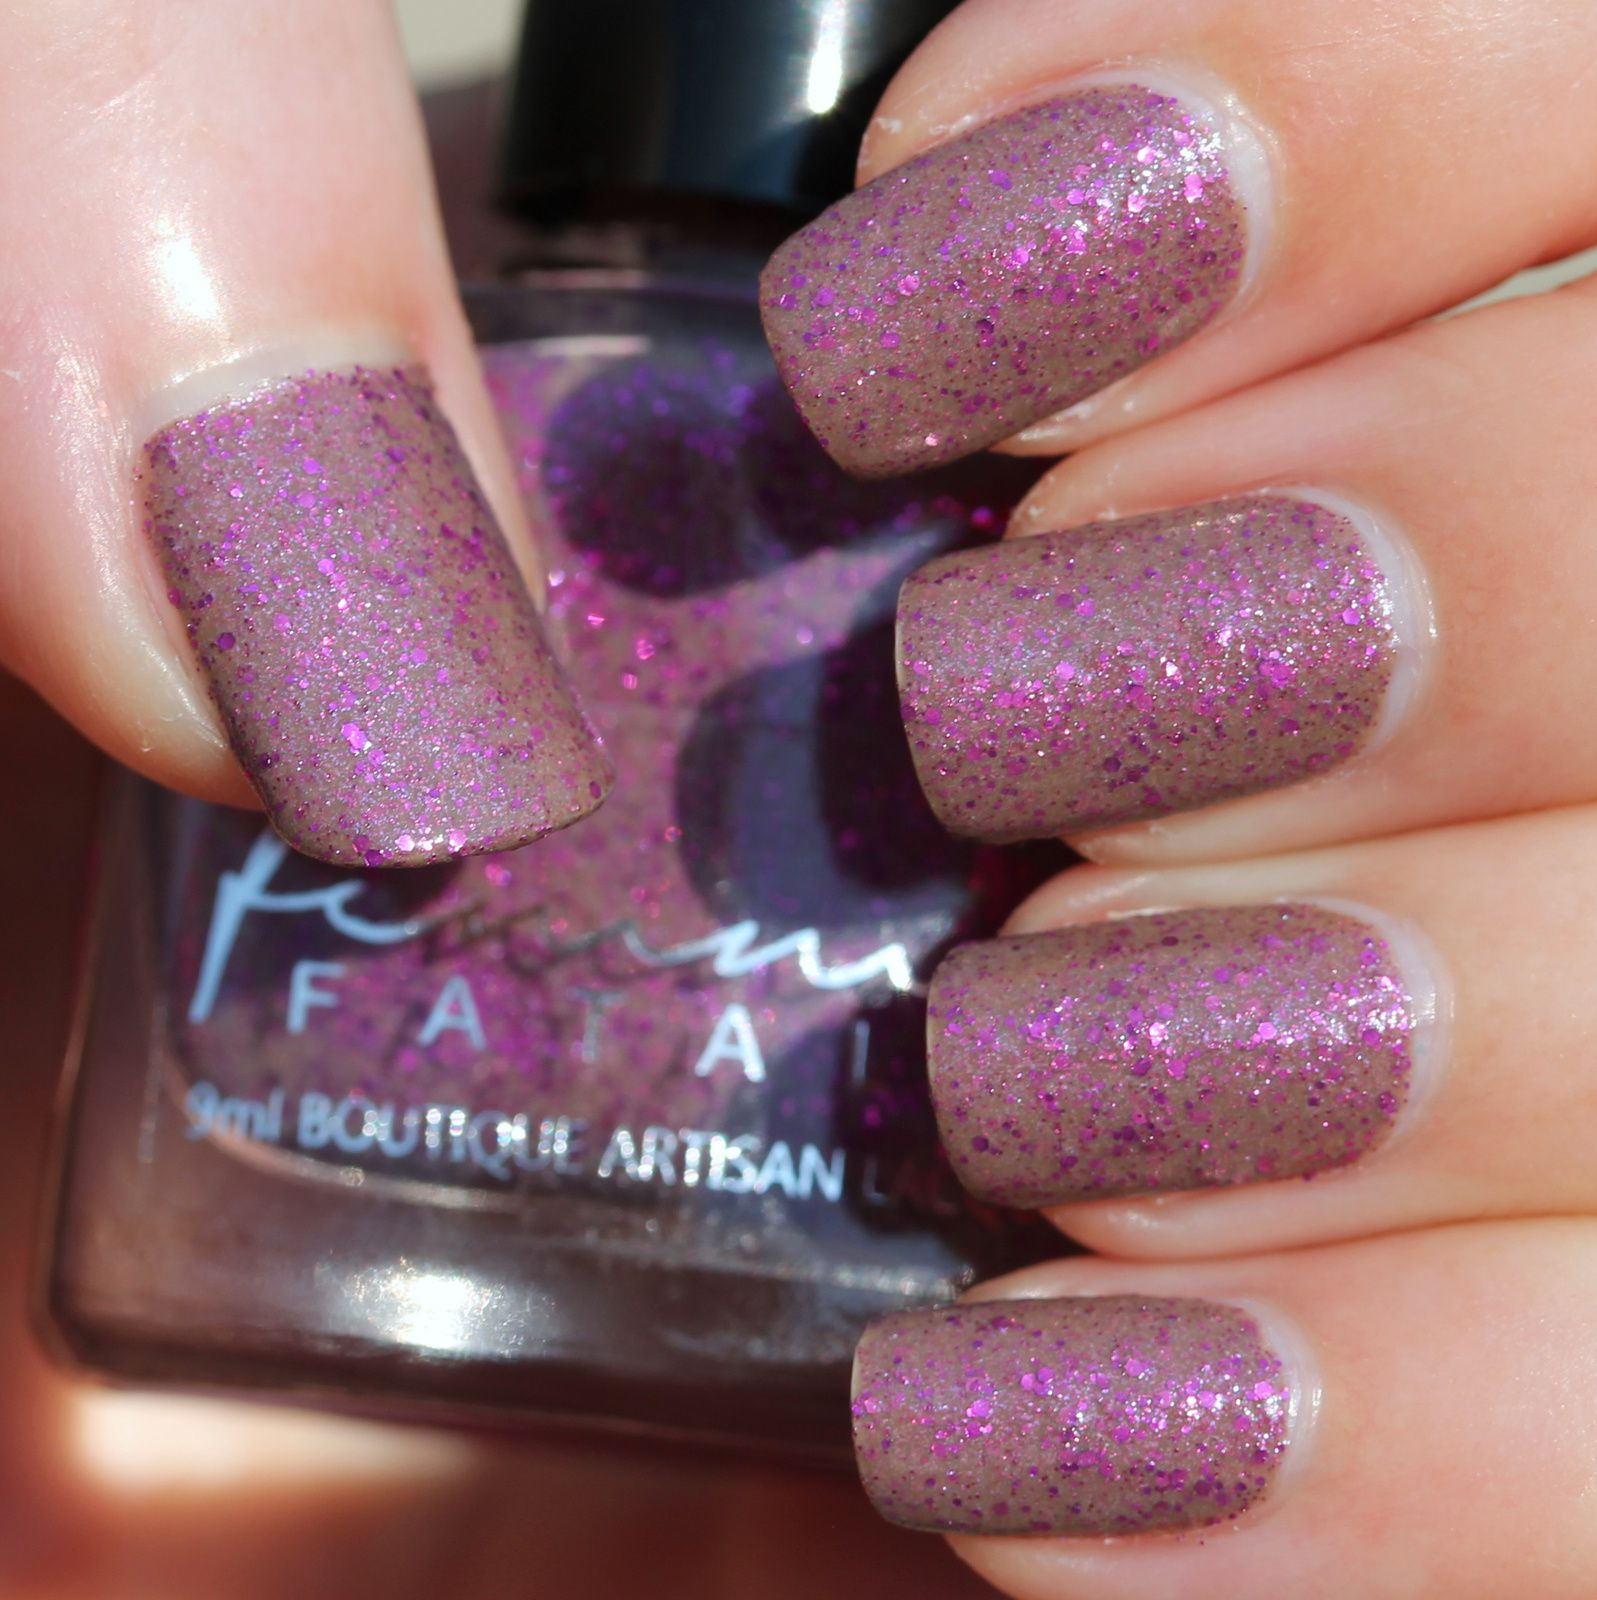 Femme Fatale Cosmetics - Always Tea-Time (3 coats, no top coat)